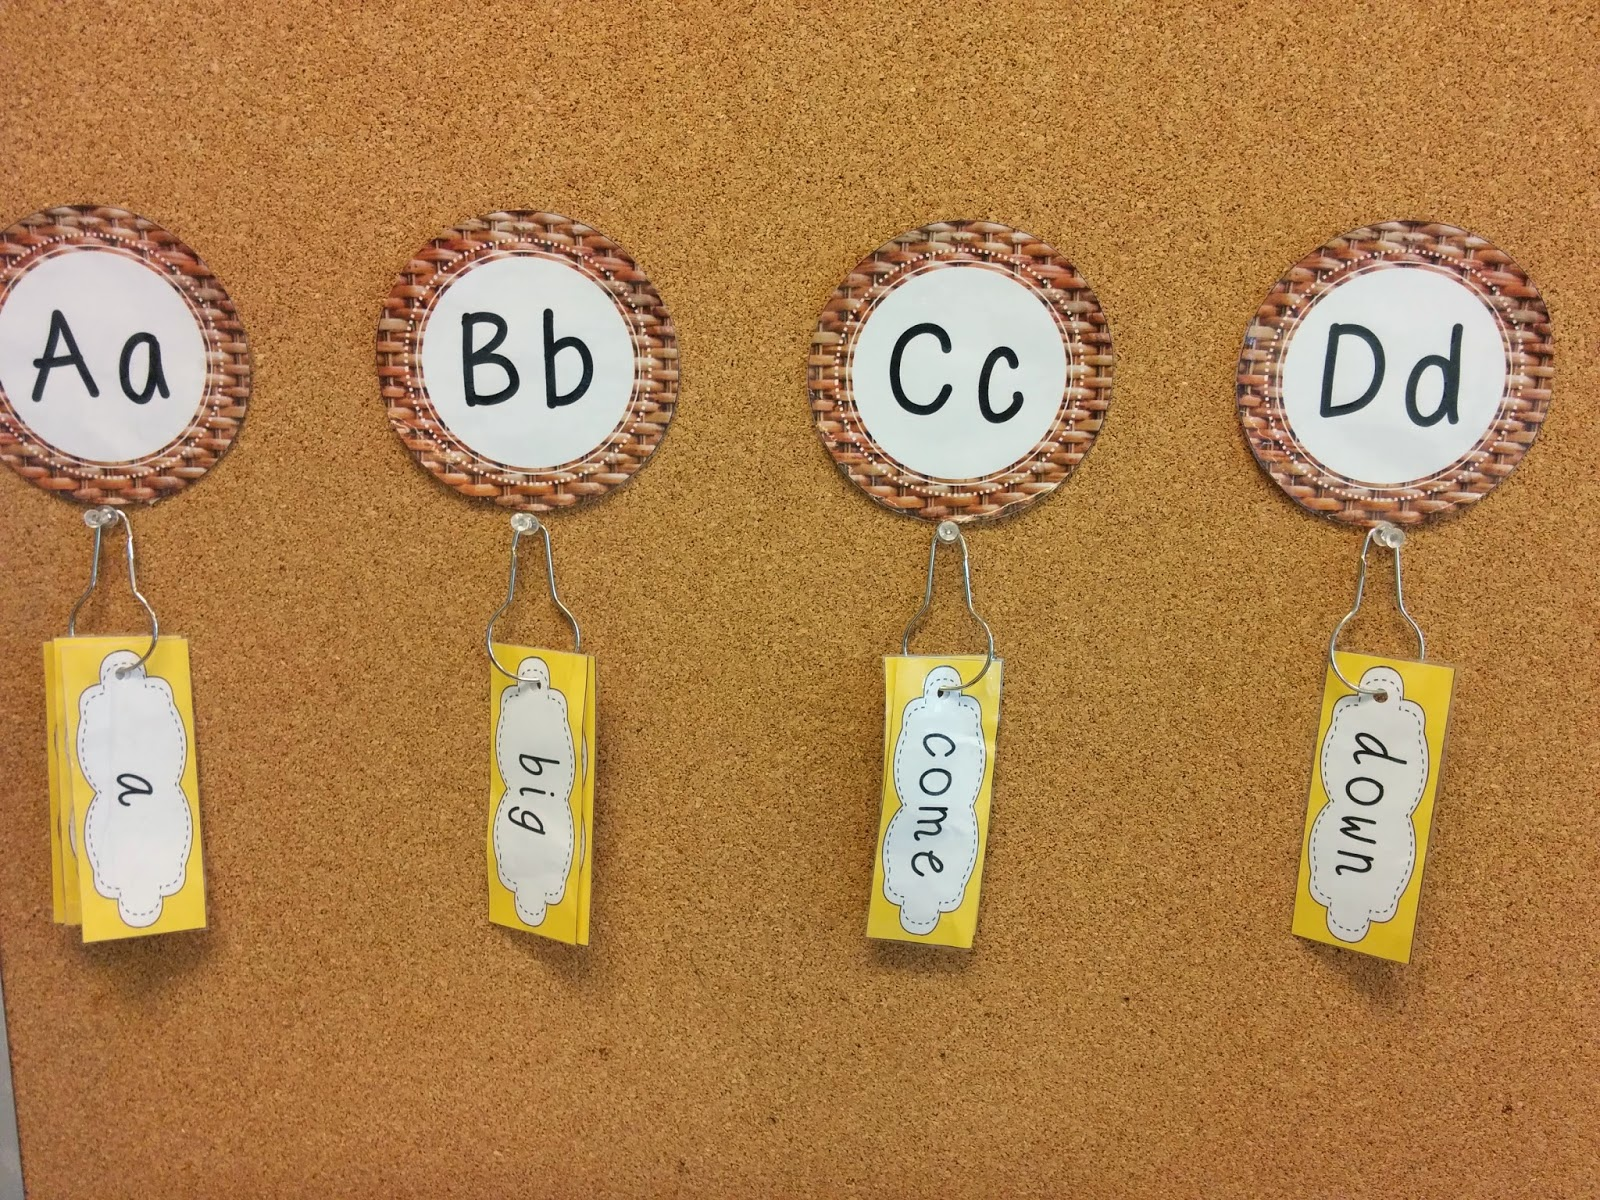 Natural-themed wicker Word Wall letters (and digraphs) to go with your Reggio Emilia-inspired room. http://www.teacherspayteachers.com/Product/Word-Wall-Headers-Wicker-Texture-2-Upper-and-Lowercase-Letters-Digraphs-1414567